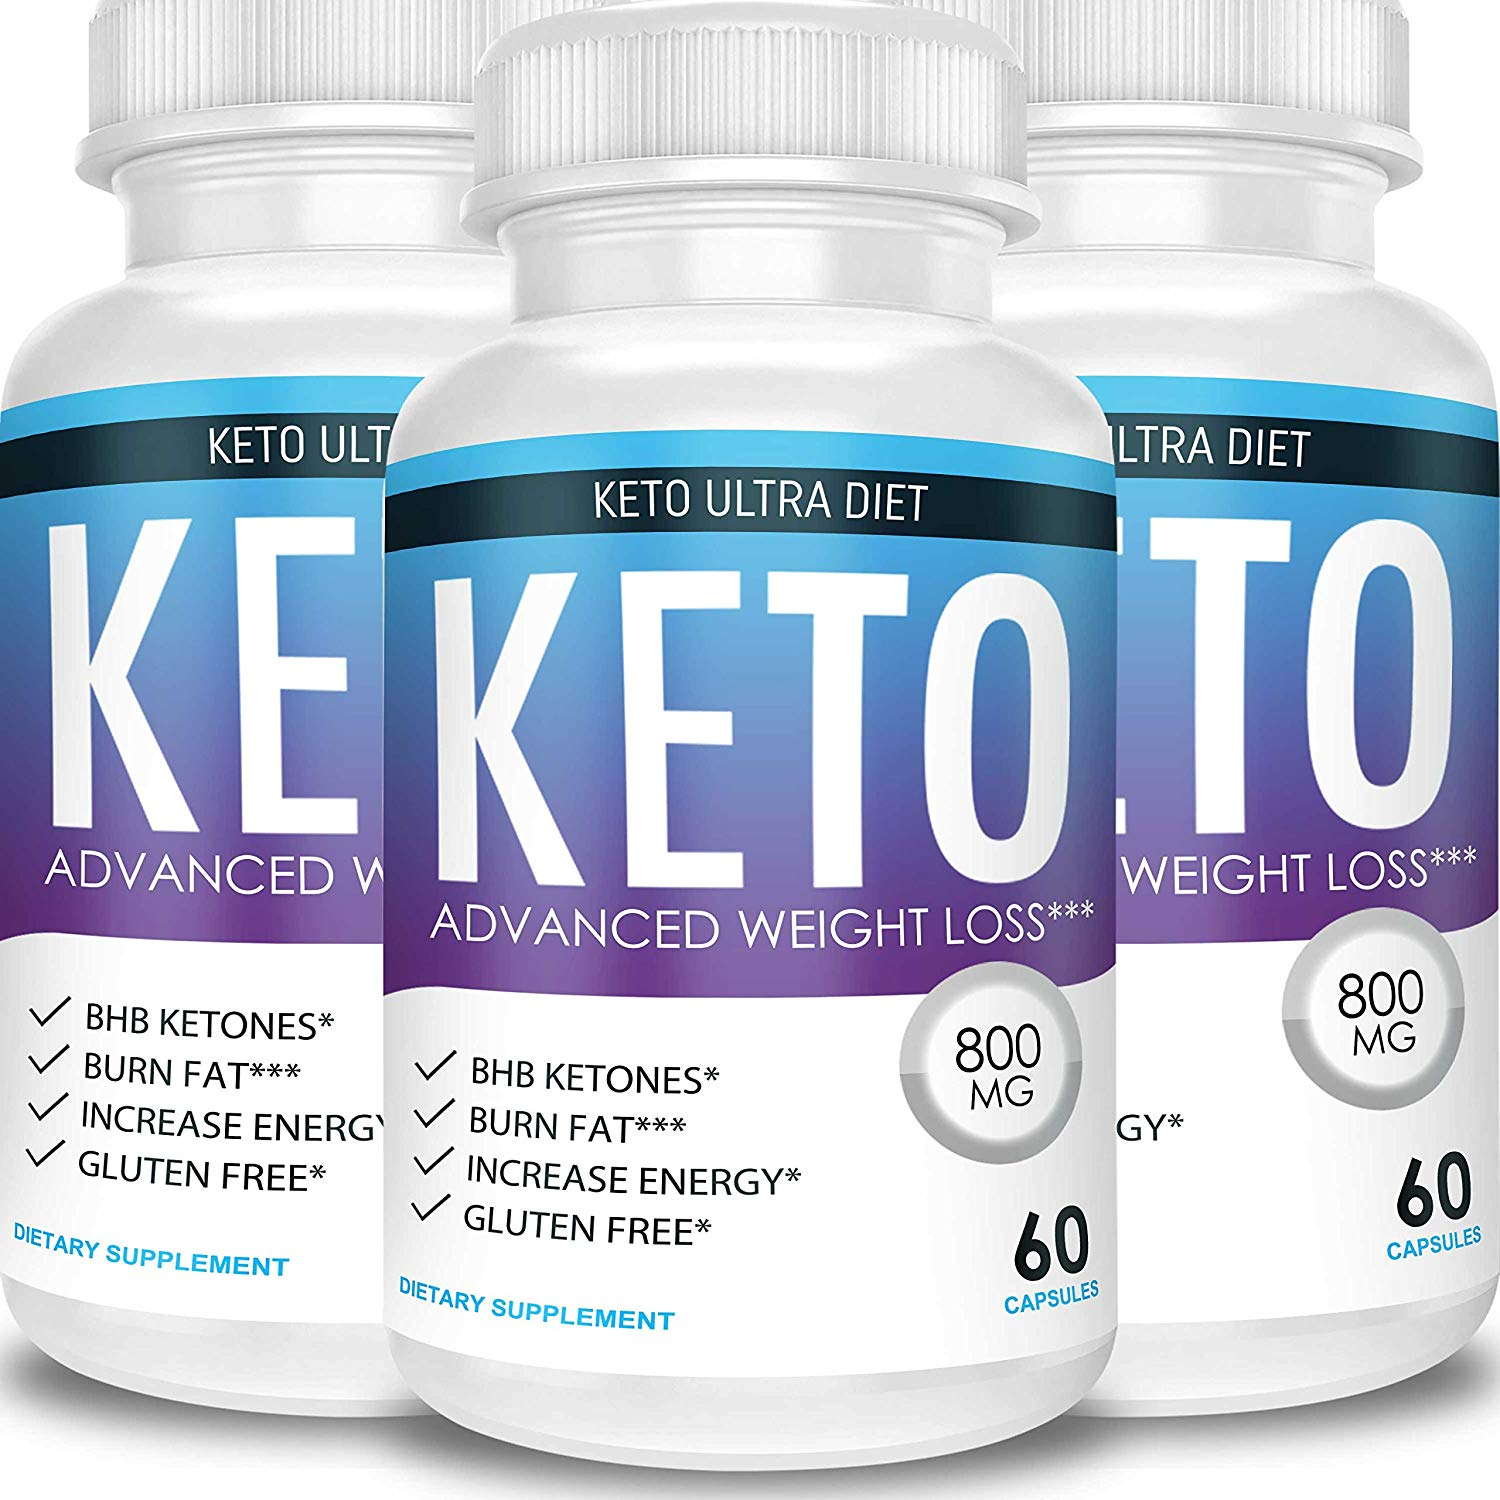 Weight Loss Keto Ultra Diet Supplements Keto Ultra Diet South Africa